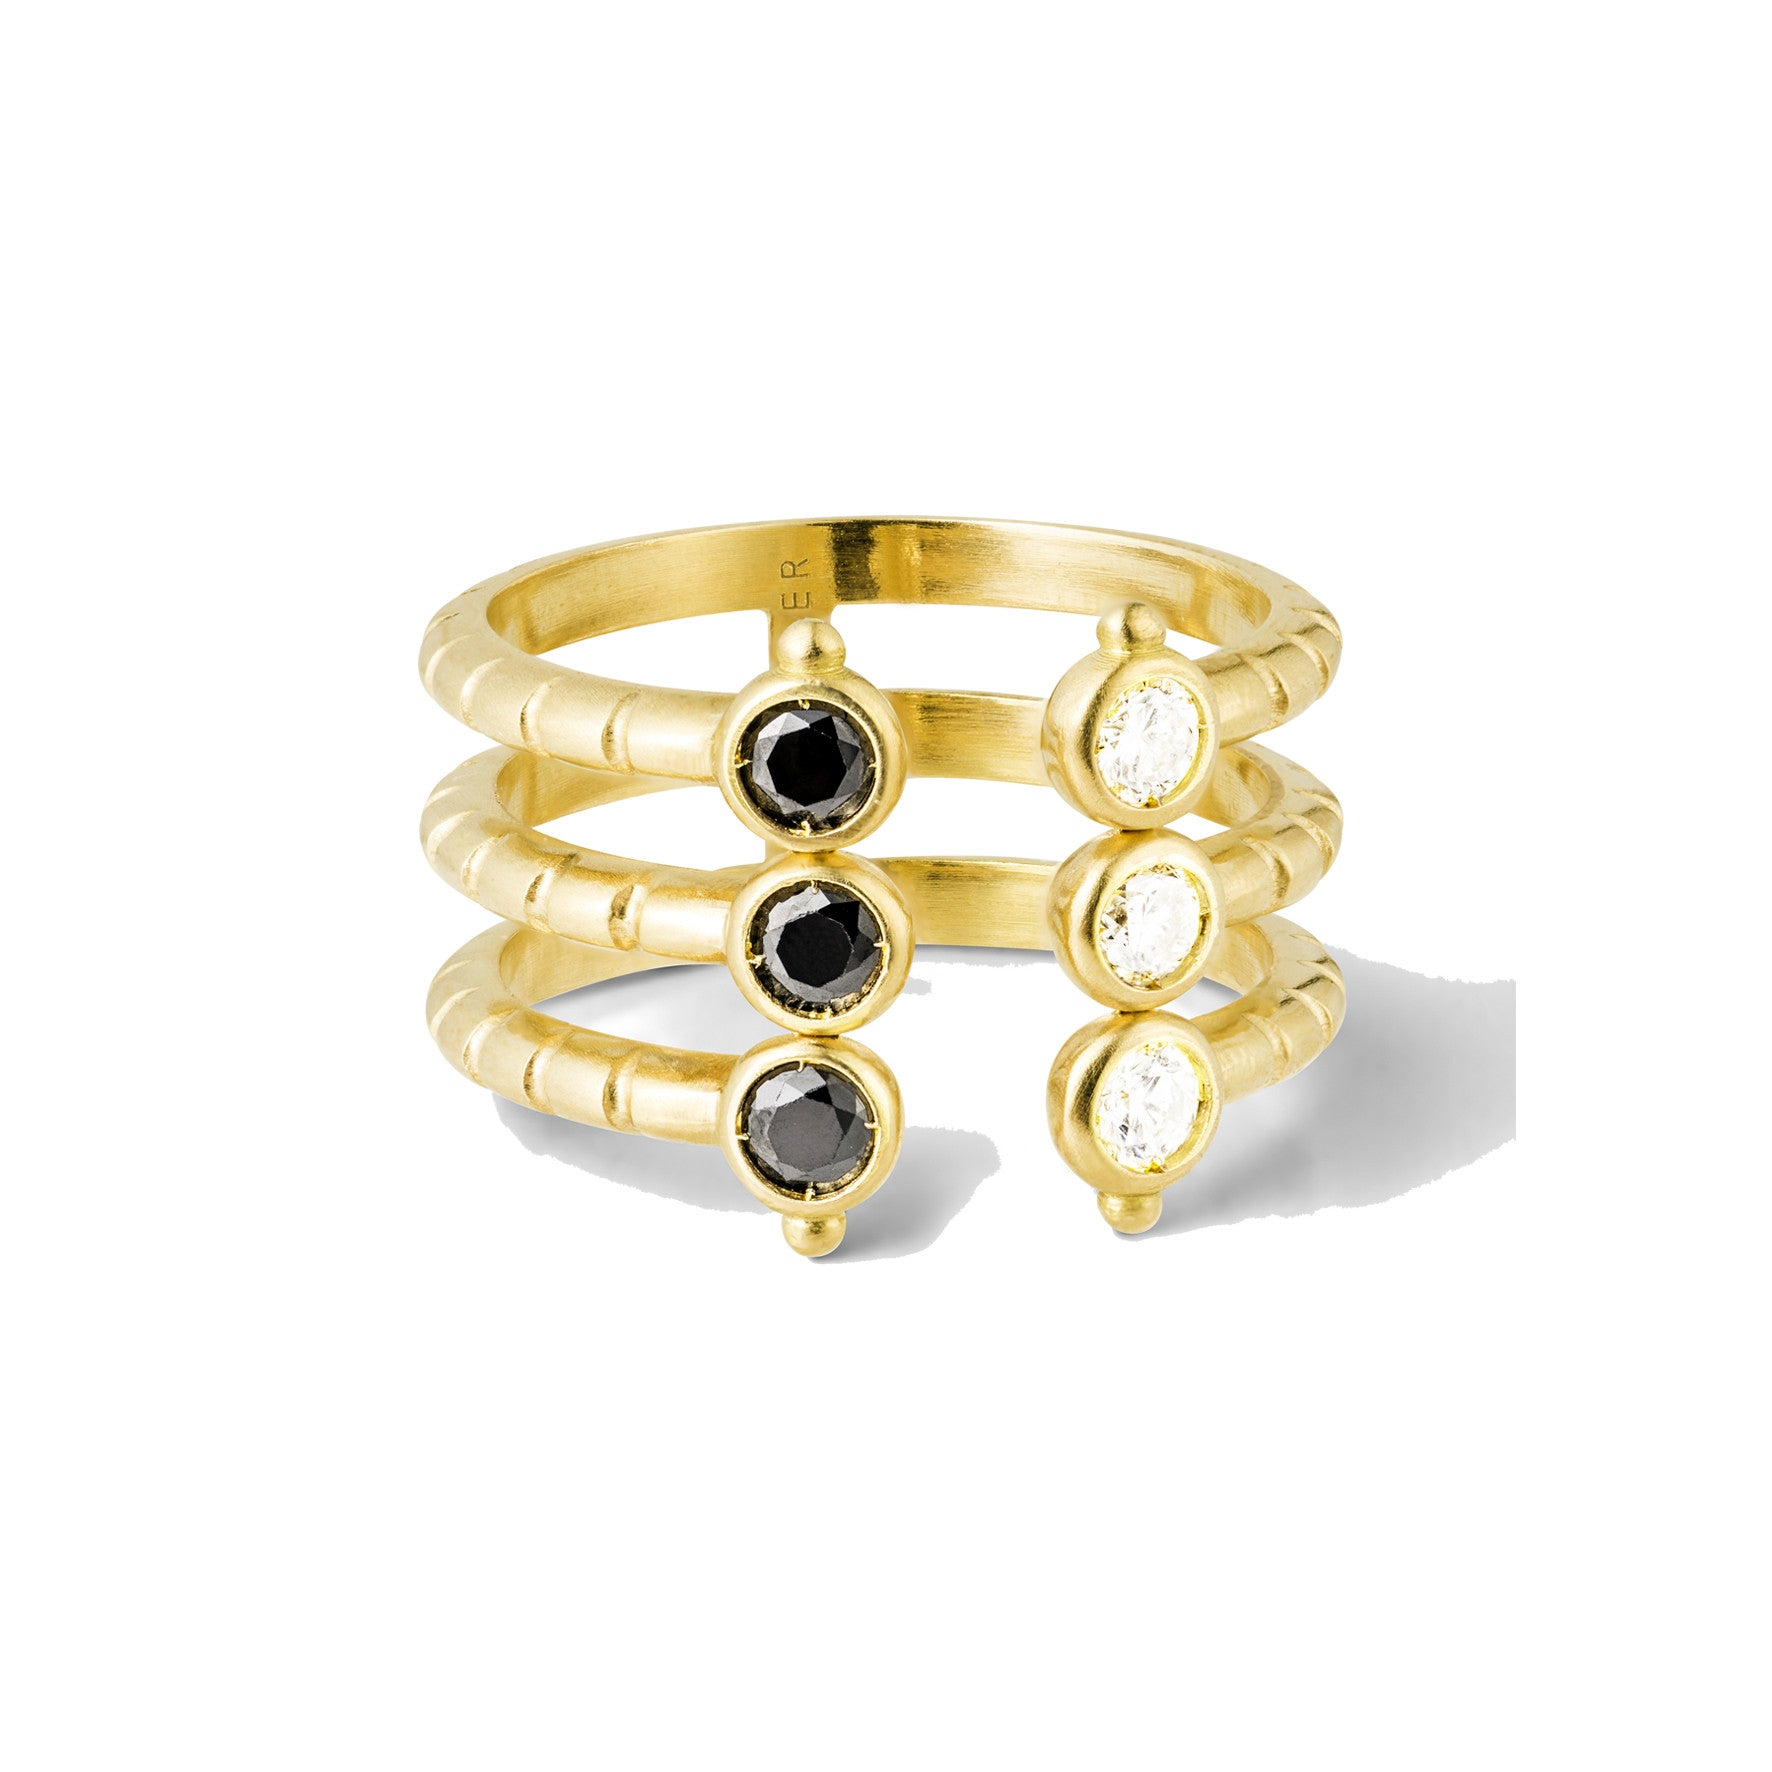 Bague Folles Iguazu triple Or jaune, Diamants et Spinelles noirs